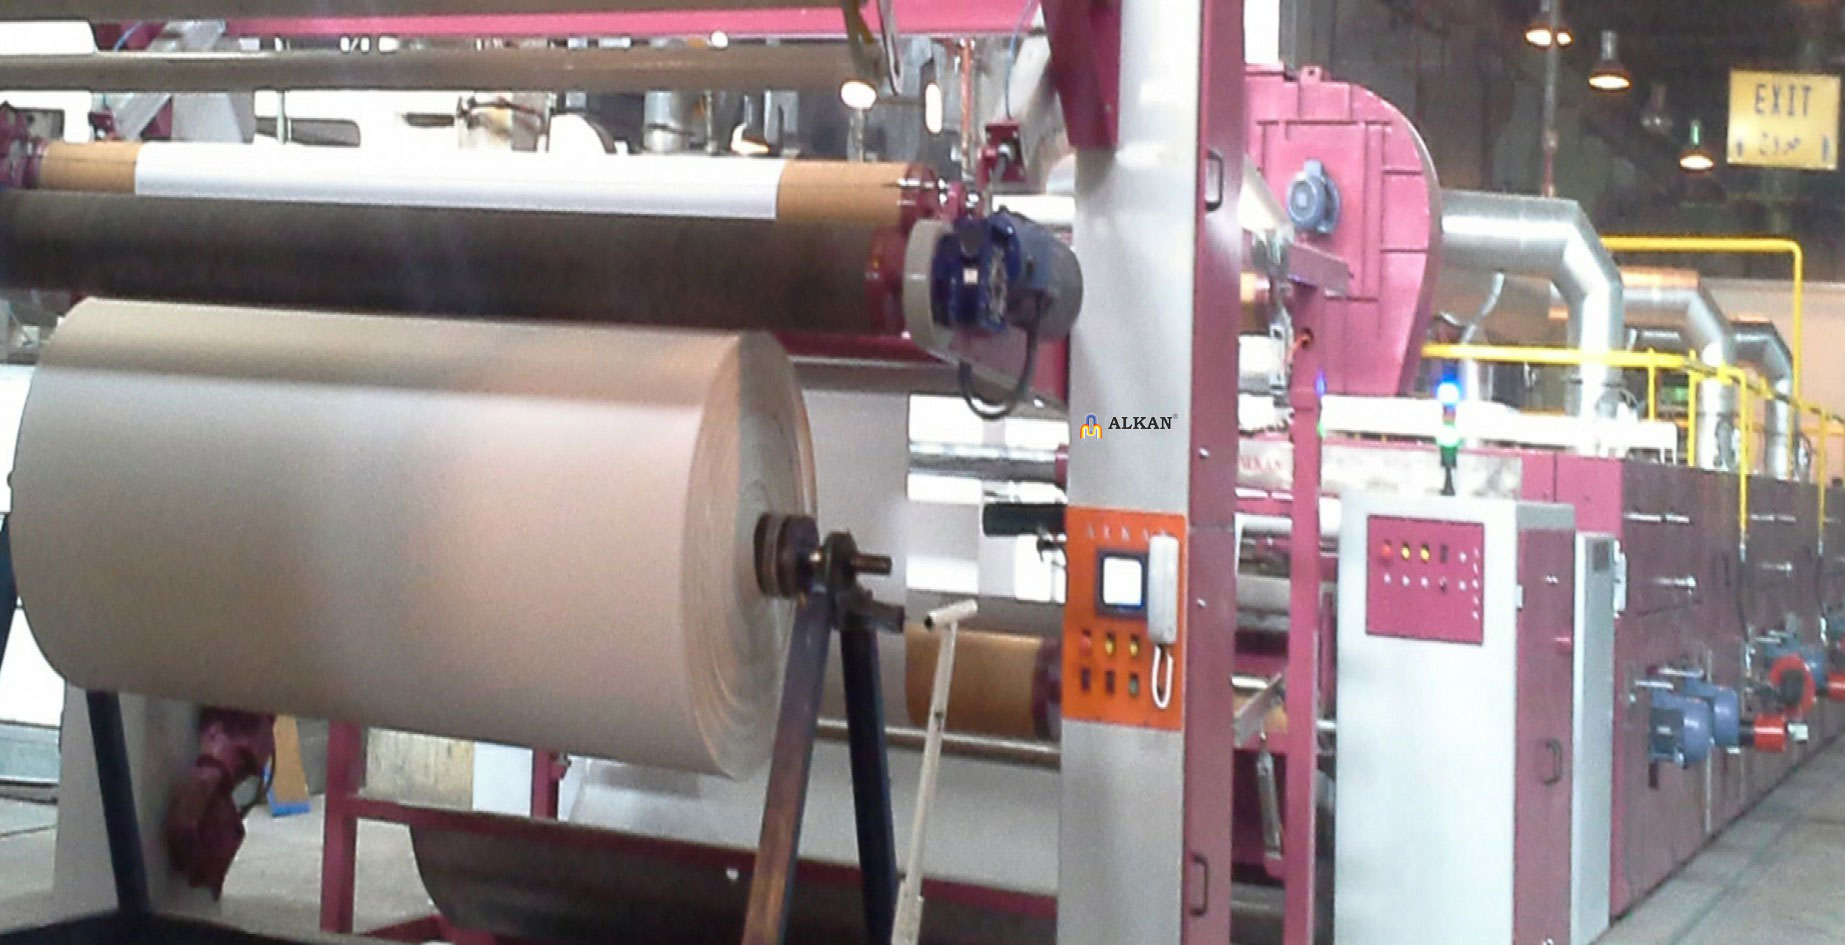 Alkan Stenter Machine for Woven Fabrics, Turkey.